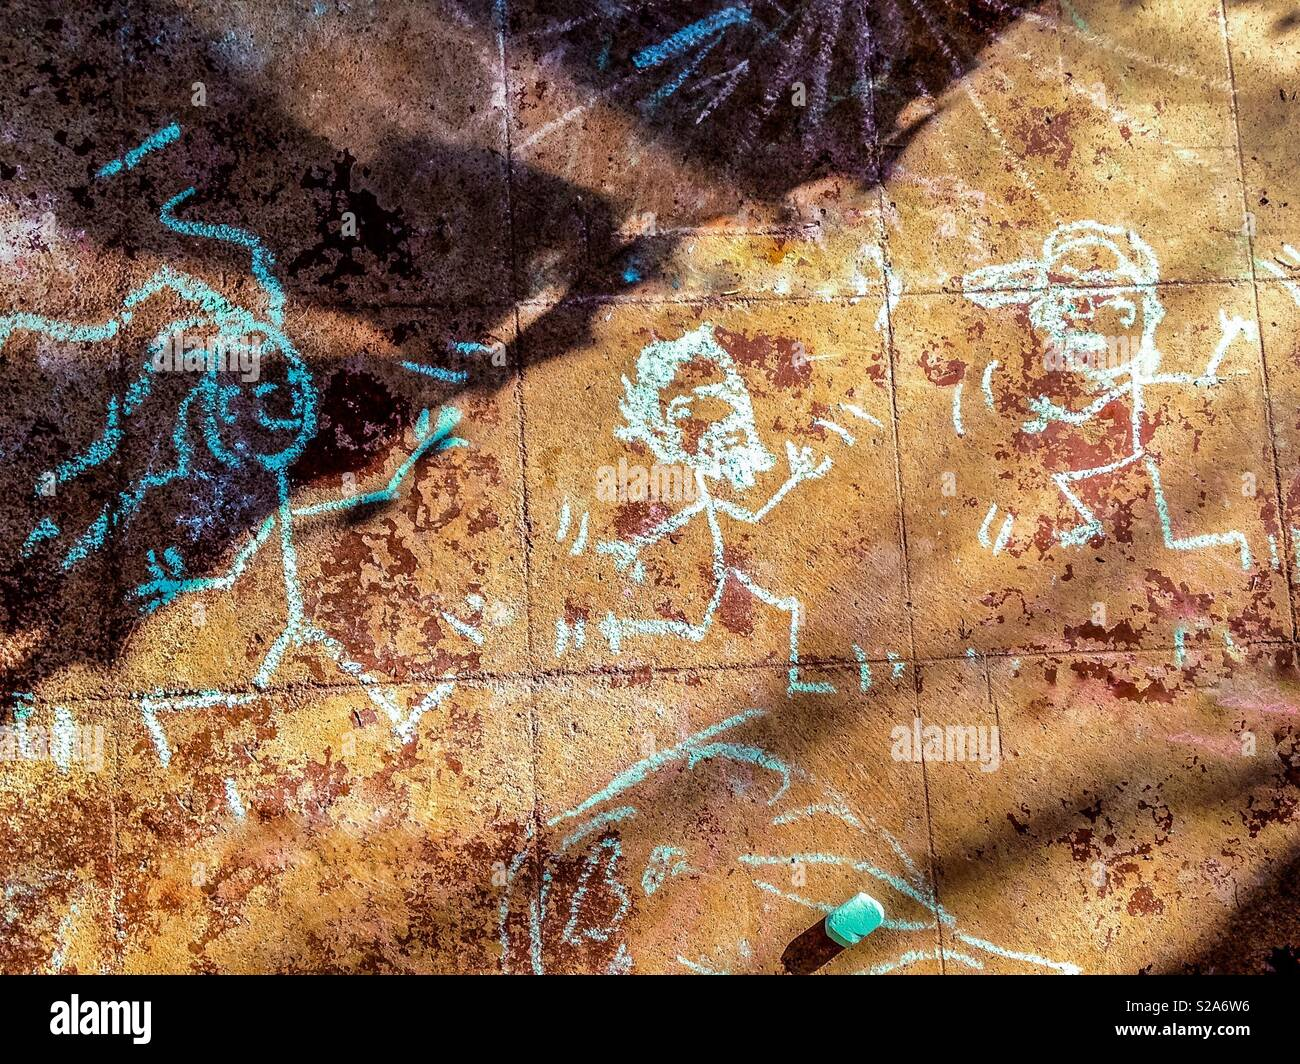 Dancing chalk stick figures drawn on front porch - Stock Image